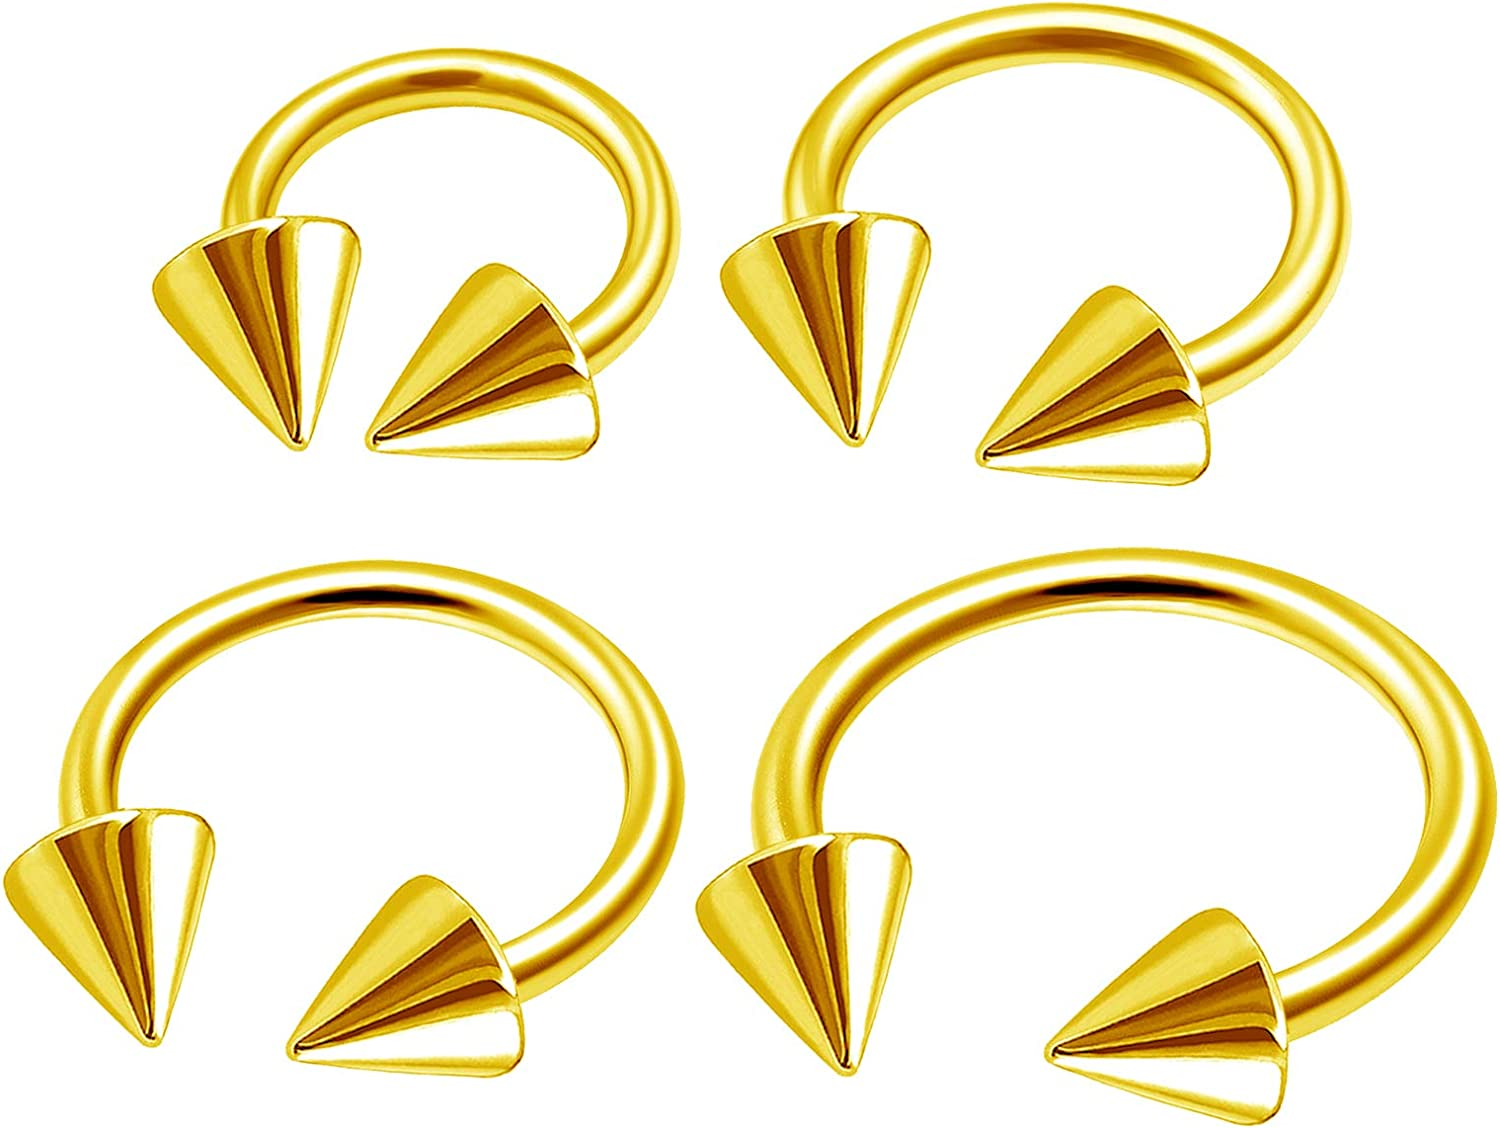 MATIGA 4Pcs Anodized Surgical Steel 16g 6mm 8mm 10mm 12mm Horseshoe Barbell Earrings Piercing Jewelry Tragus 4mm Cone More Choices